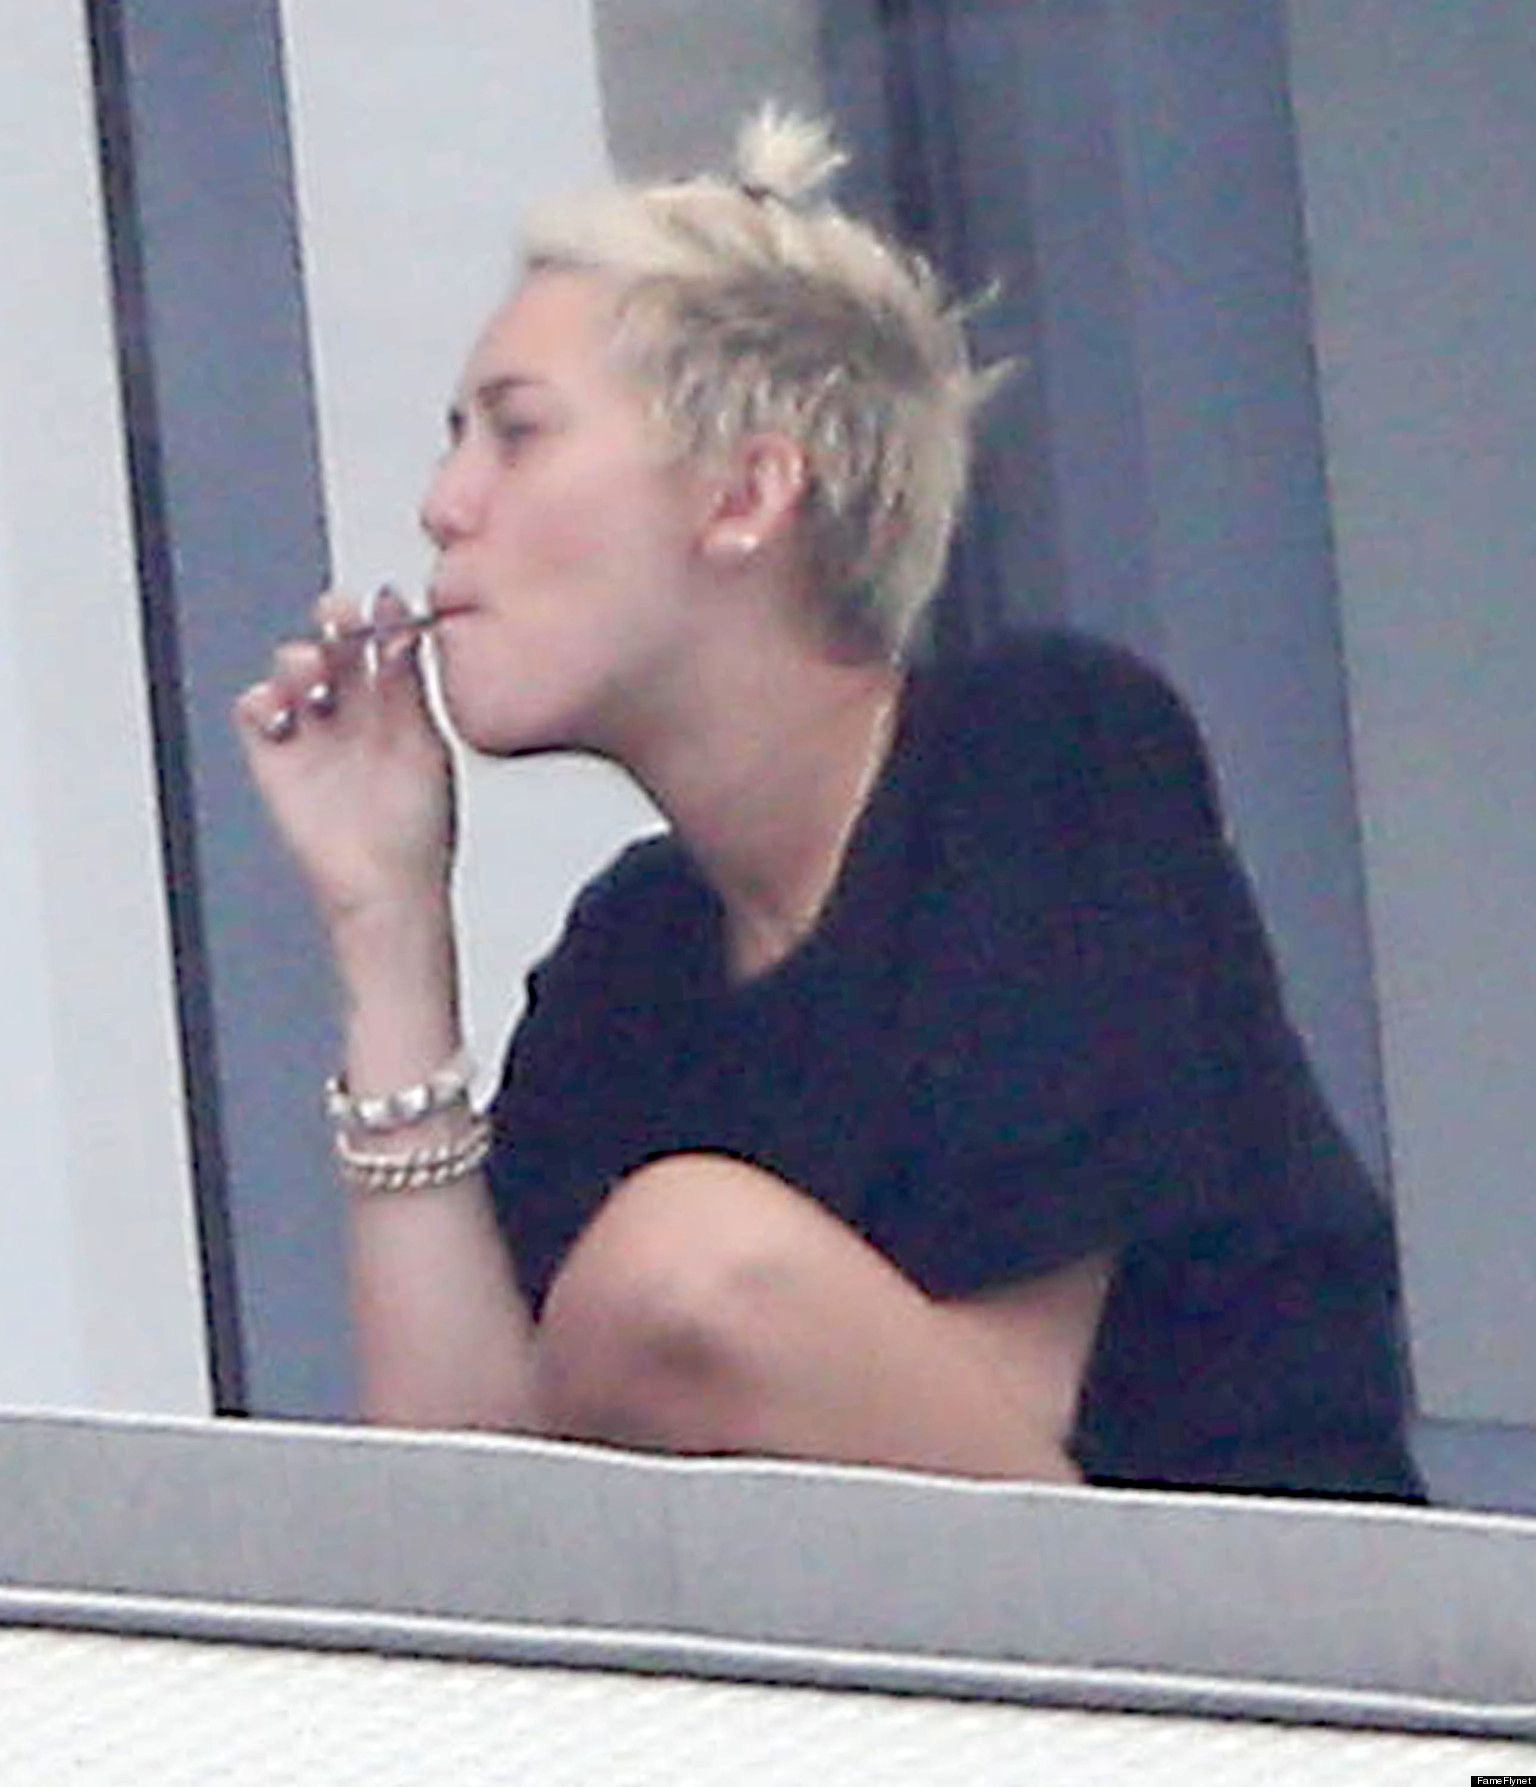 Miley Cyrus Caught Smoking Something Suspicious